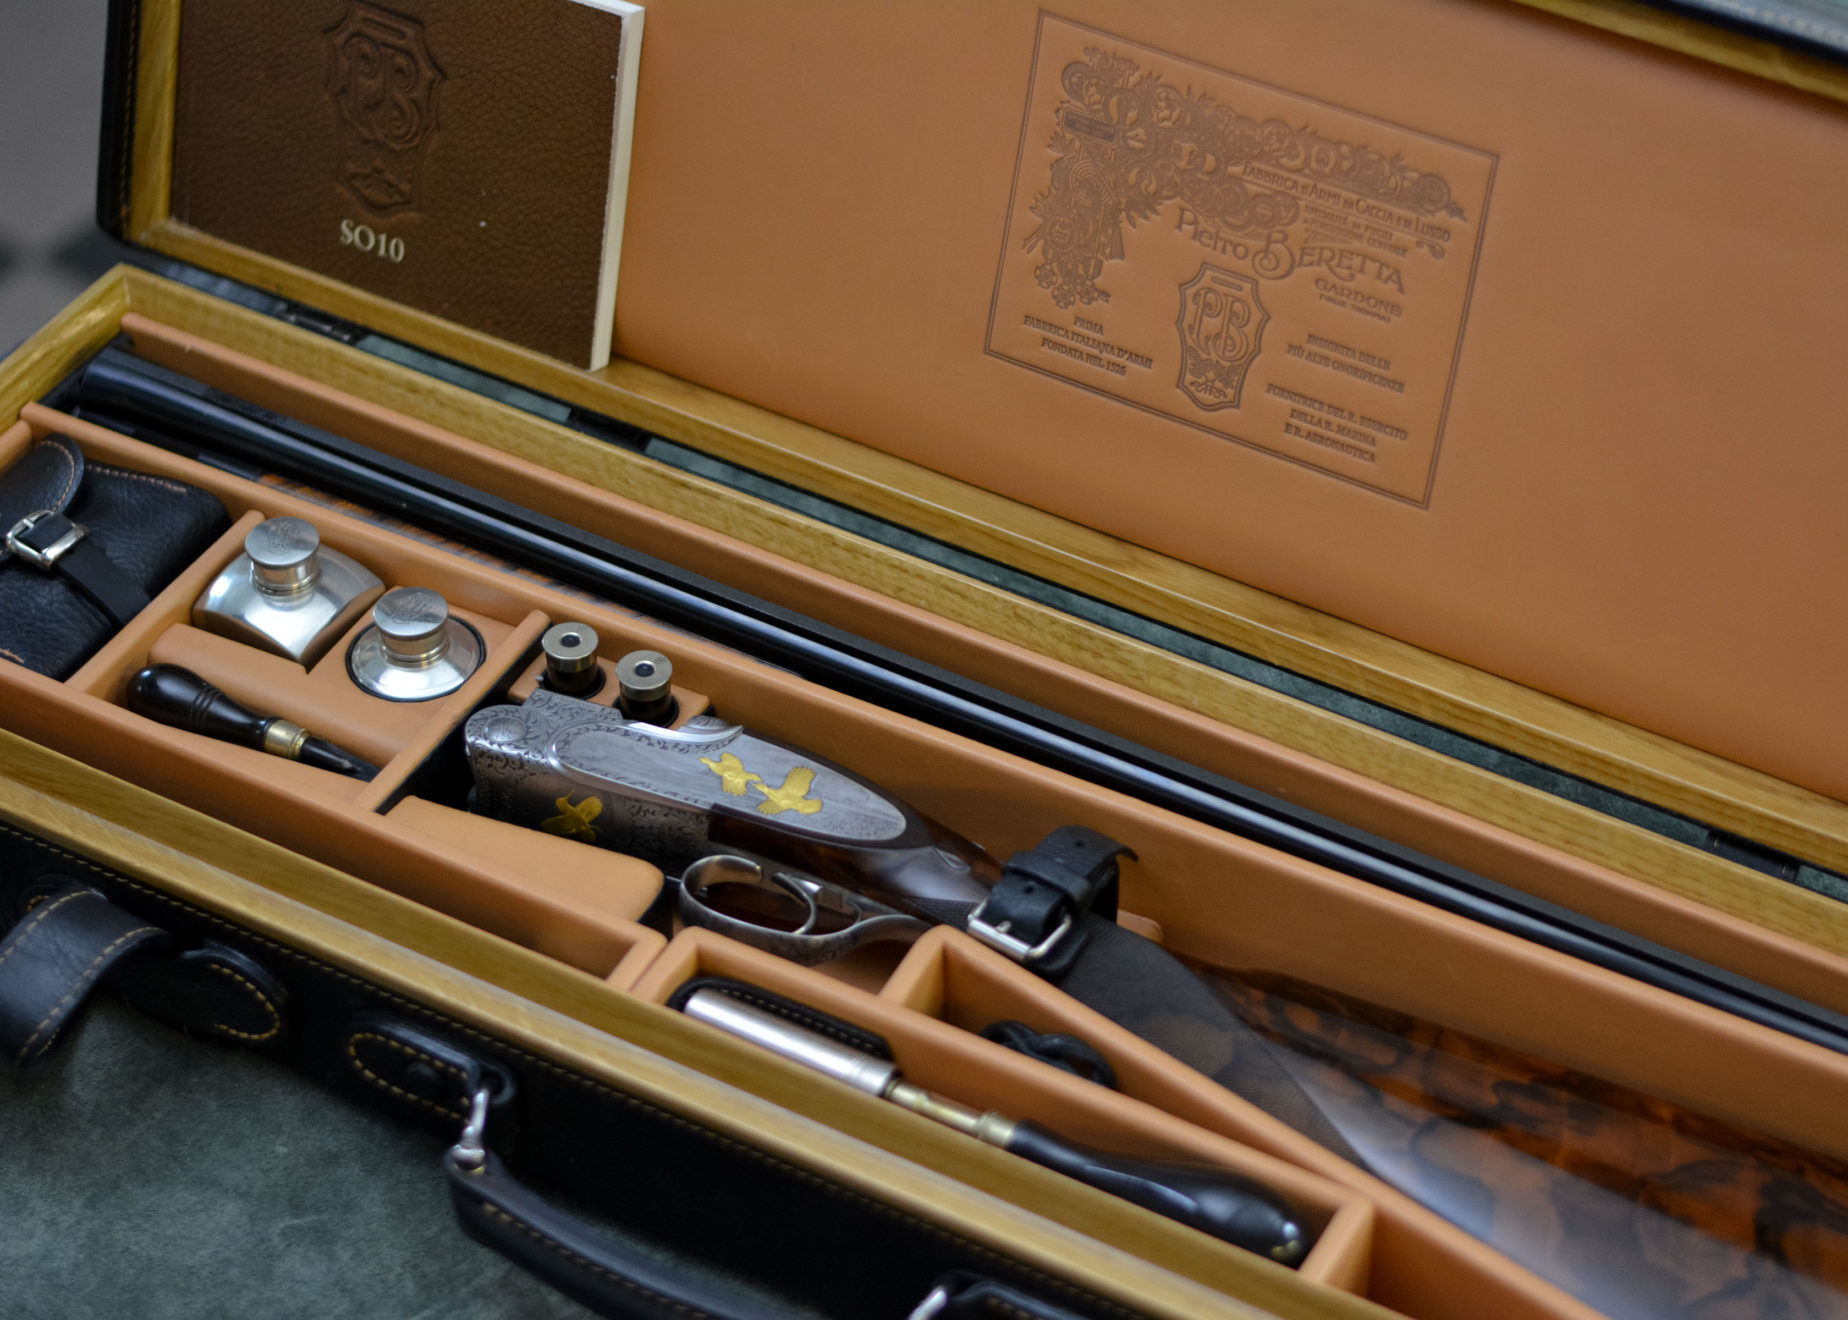 Beretta SO10 EELL for sale in case